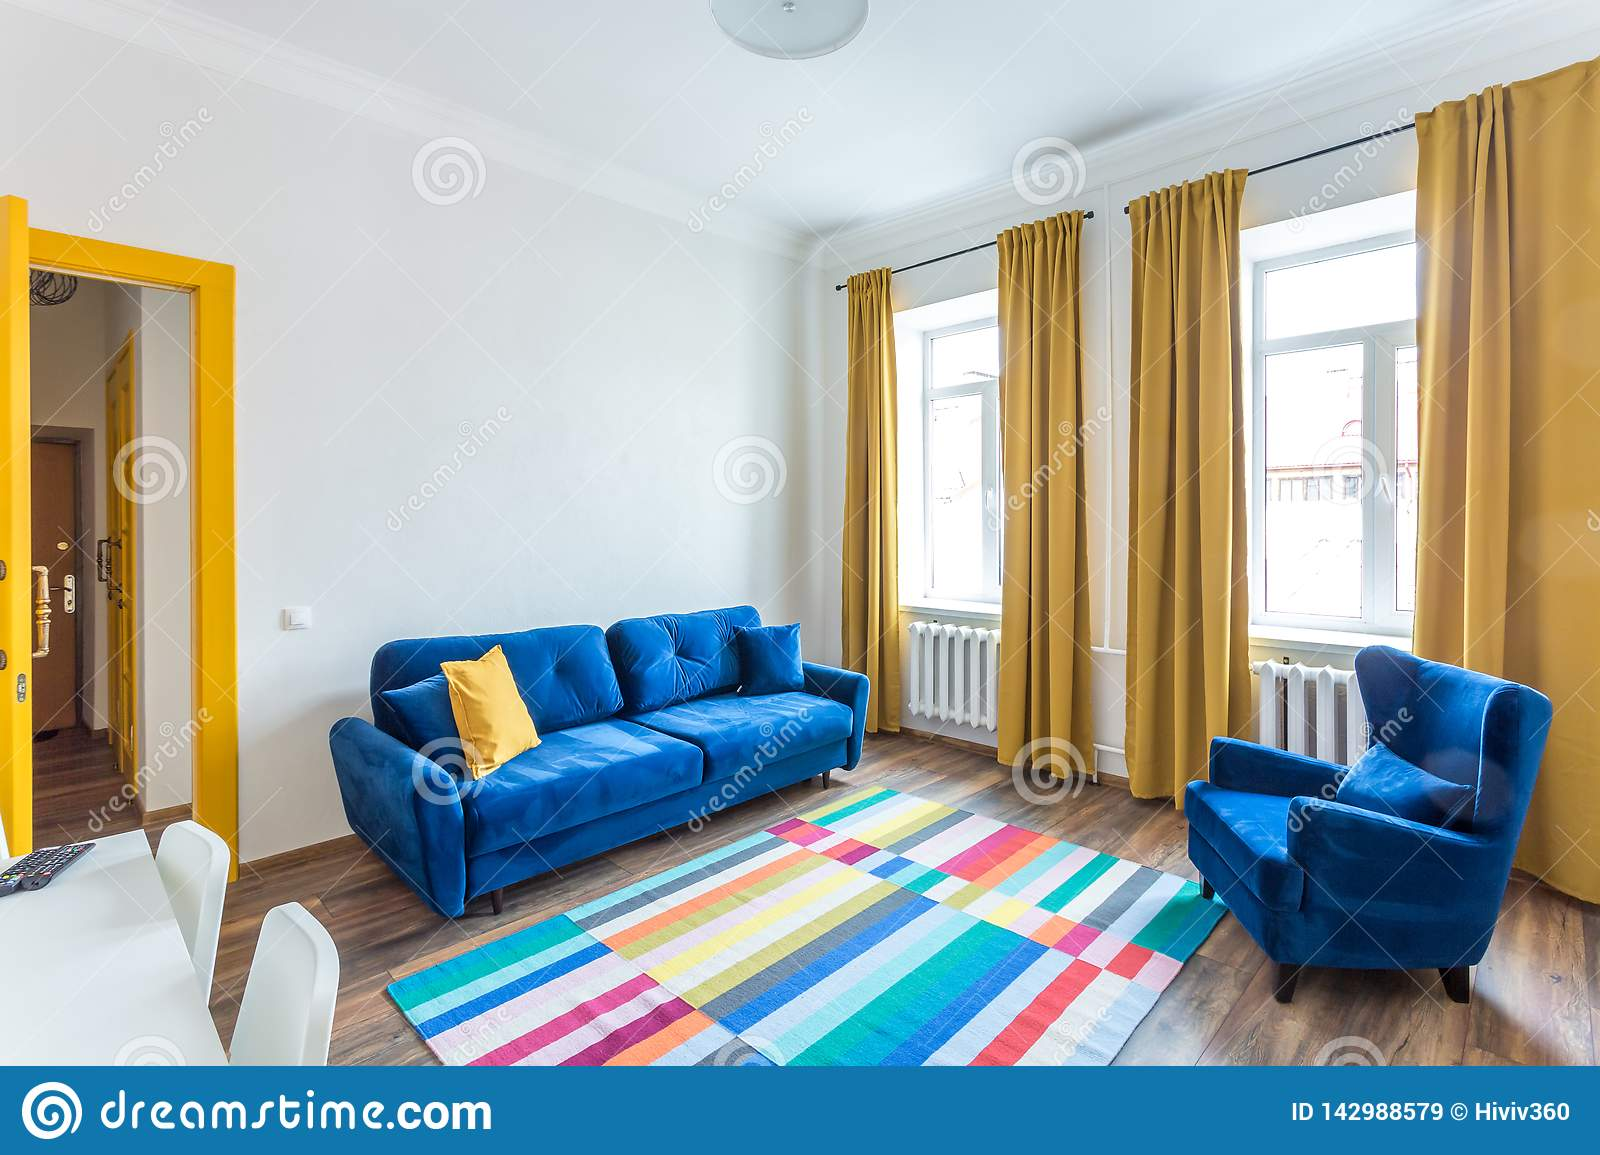 Minsk Belarus March 2019 Retro Bright Interior Of Hipster Flat Apartments With Blue Sofa Yellow Door And Colored Carpet Editorial Stock Image Image Of Hippy Indoor 142988579